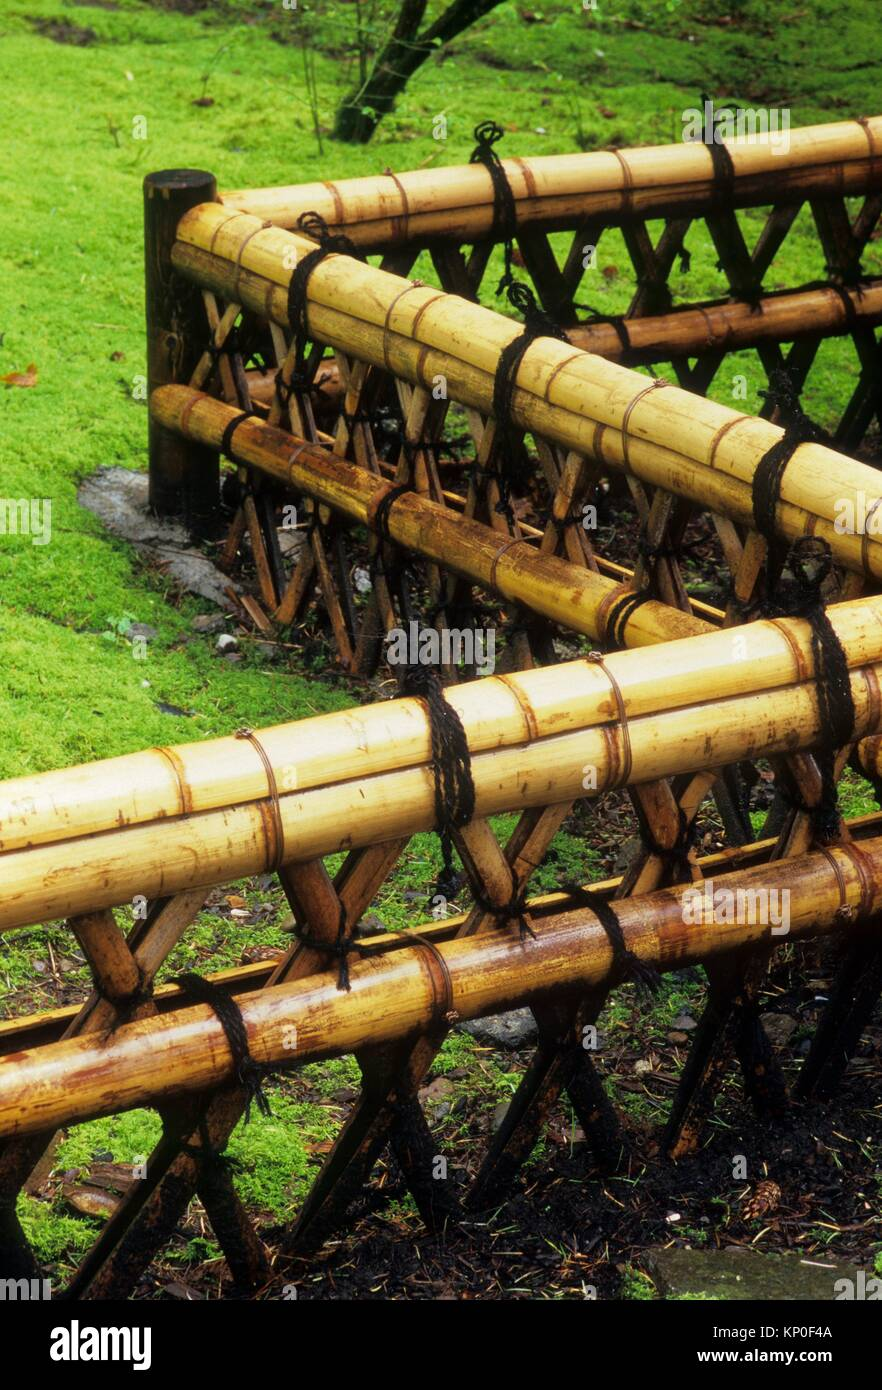 Japanese Garden Fence, Washington Park, Portland, Oregon